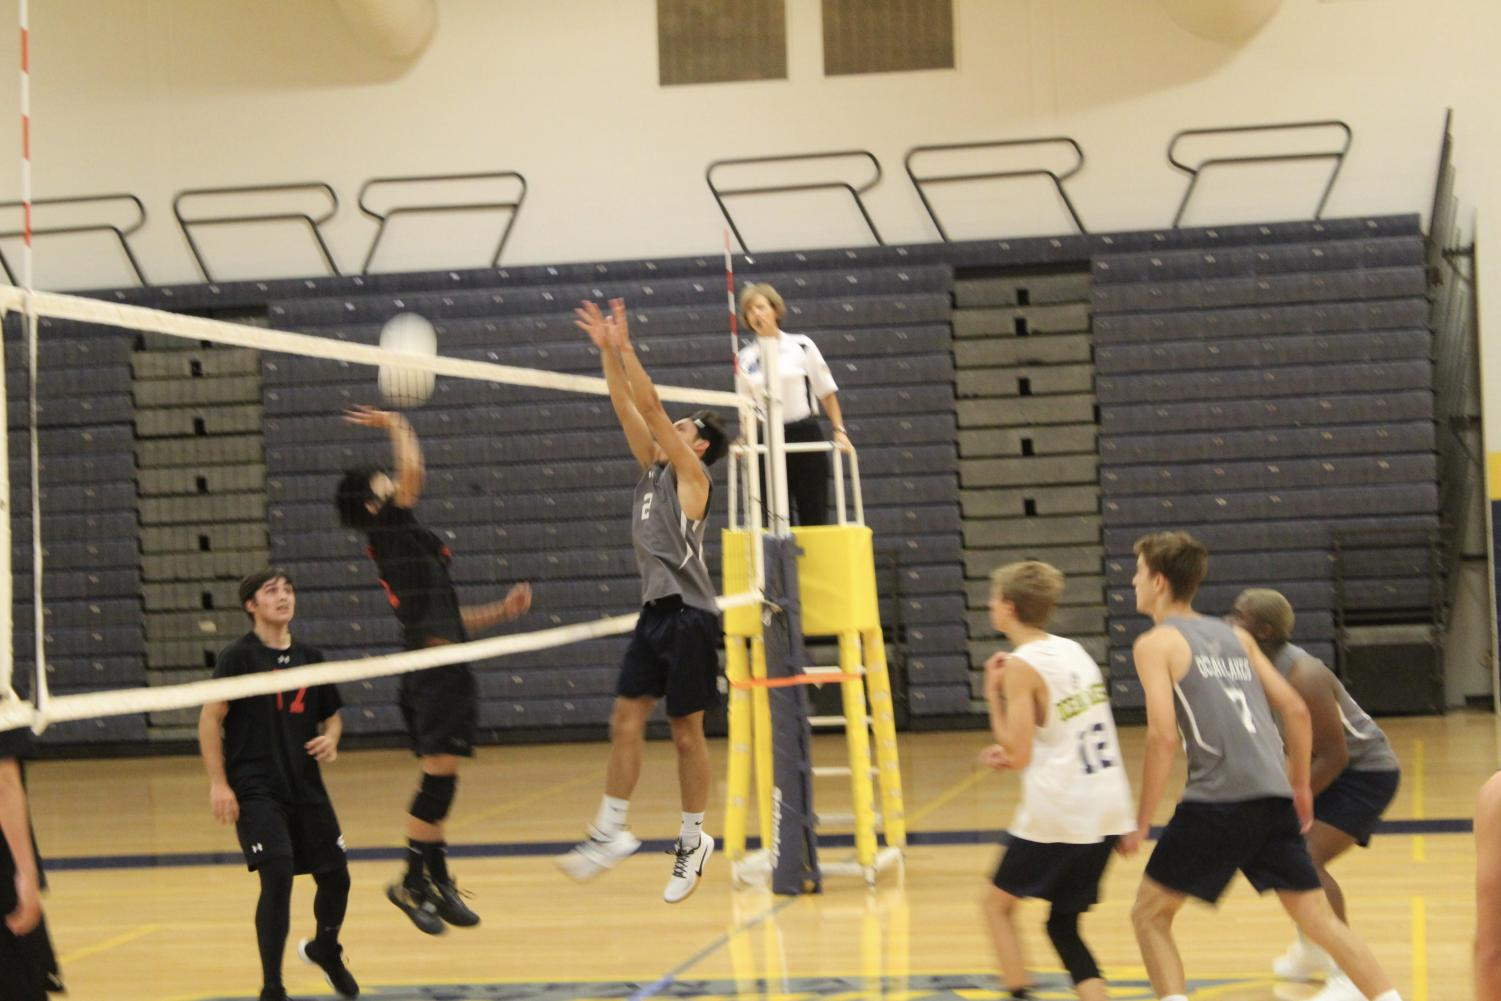 Senior Antonio Velazquez jumps to block a hit in a game against Salem on August 27.